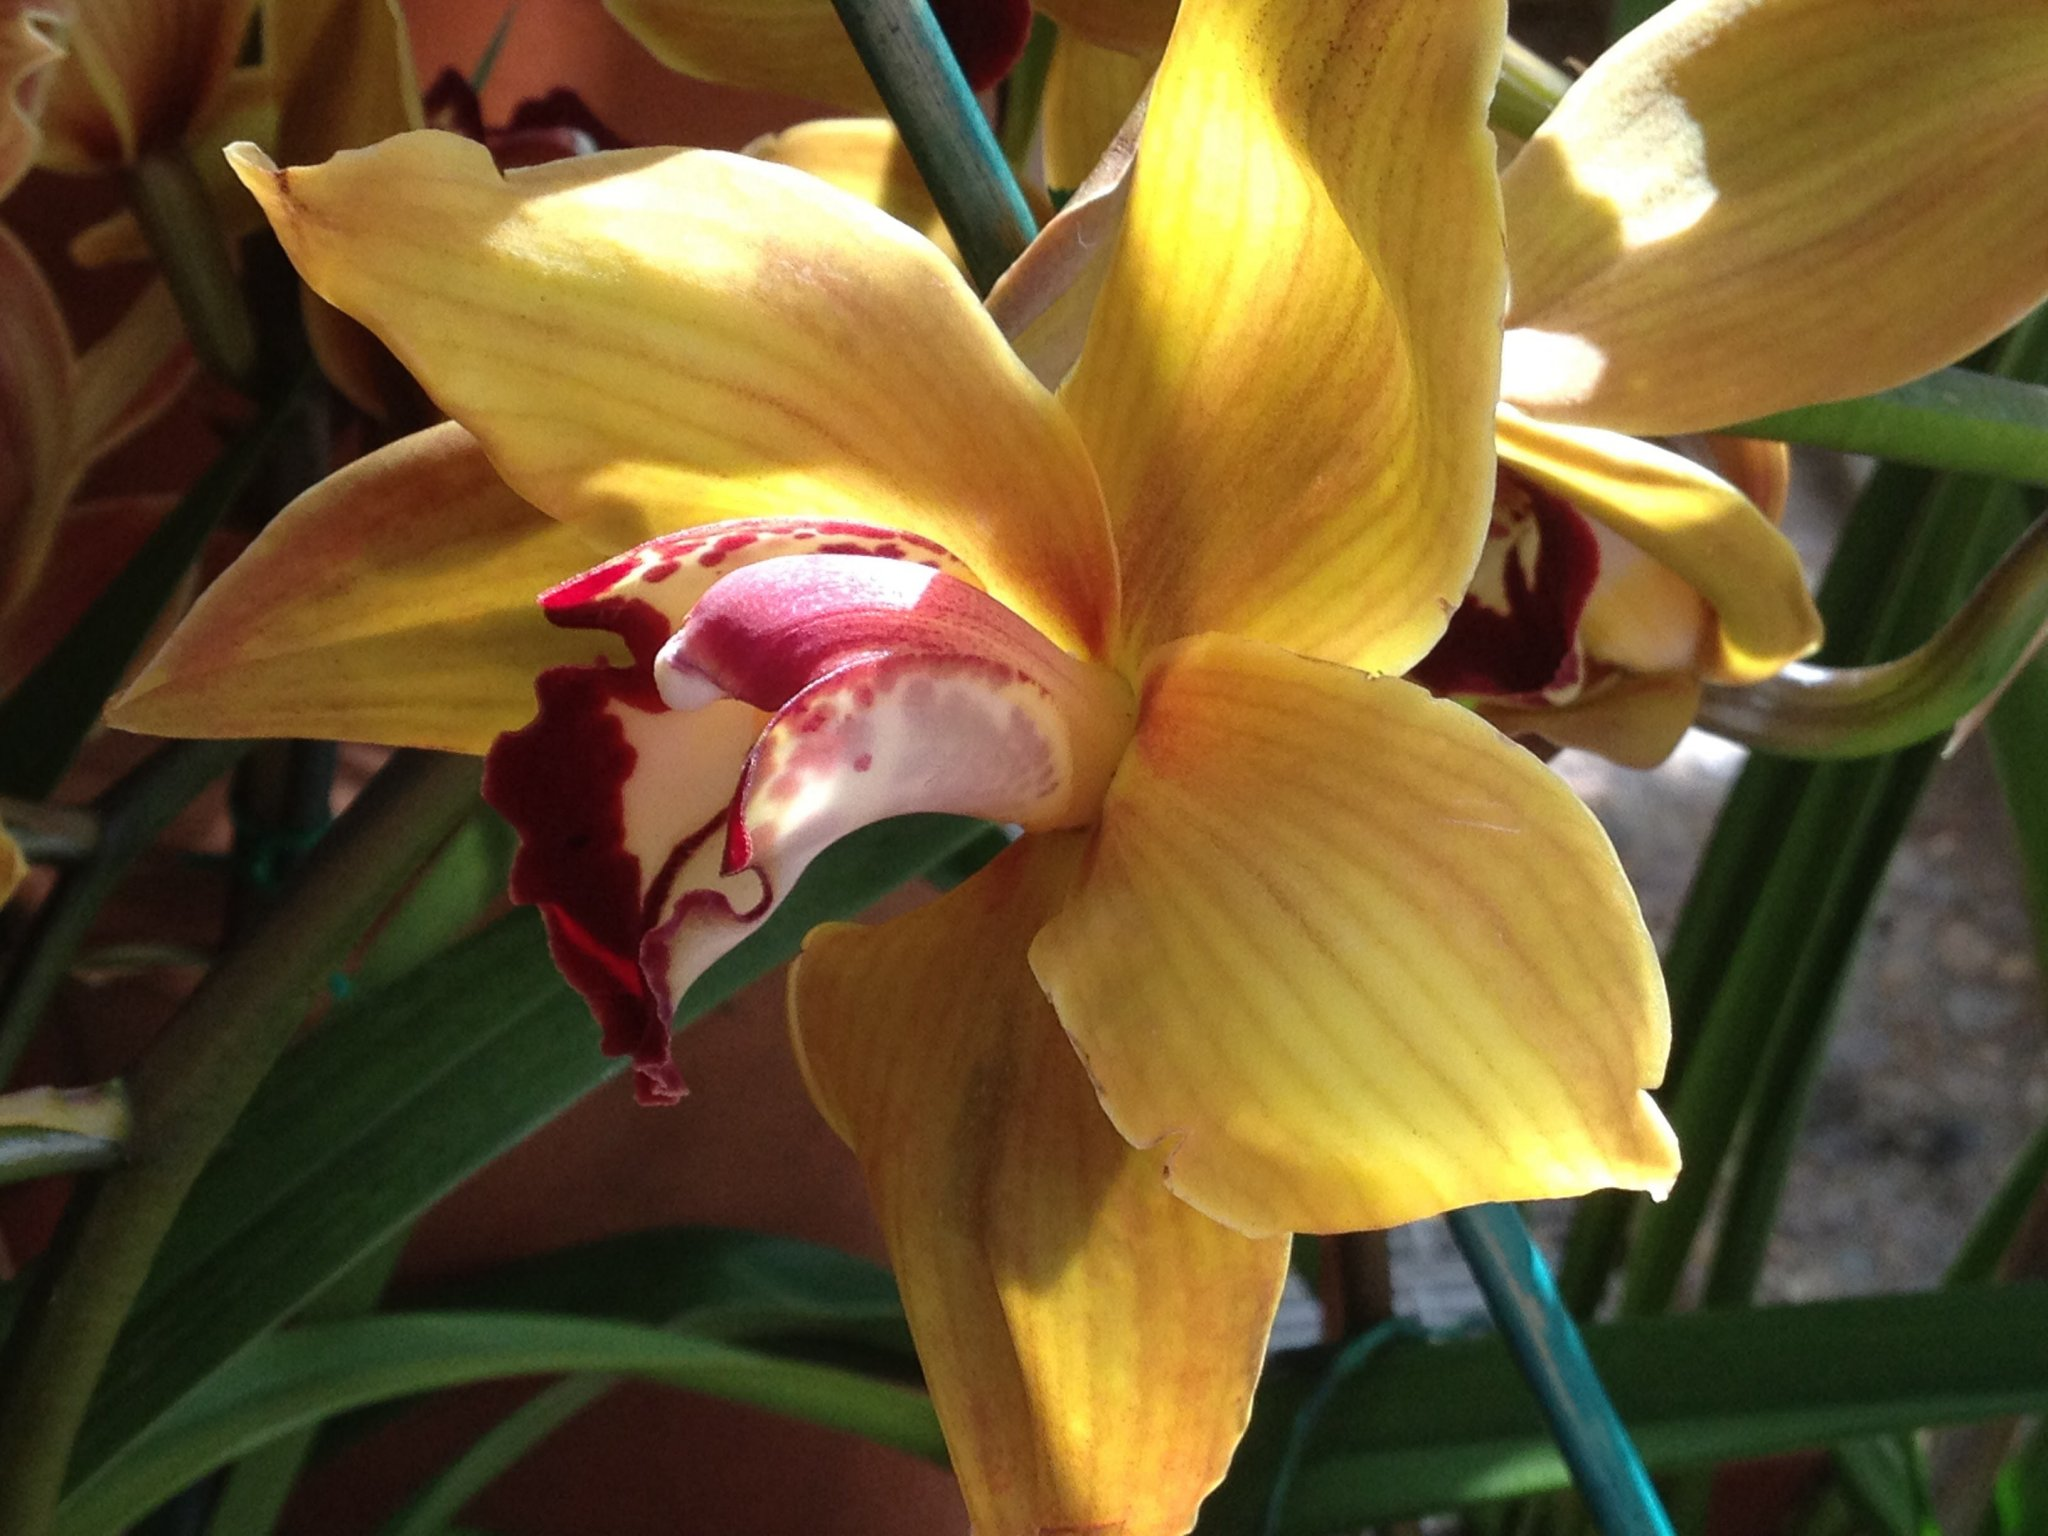 Guide to the Smithsonian: This is a beautiful yellow iris-esque flower.